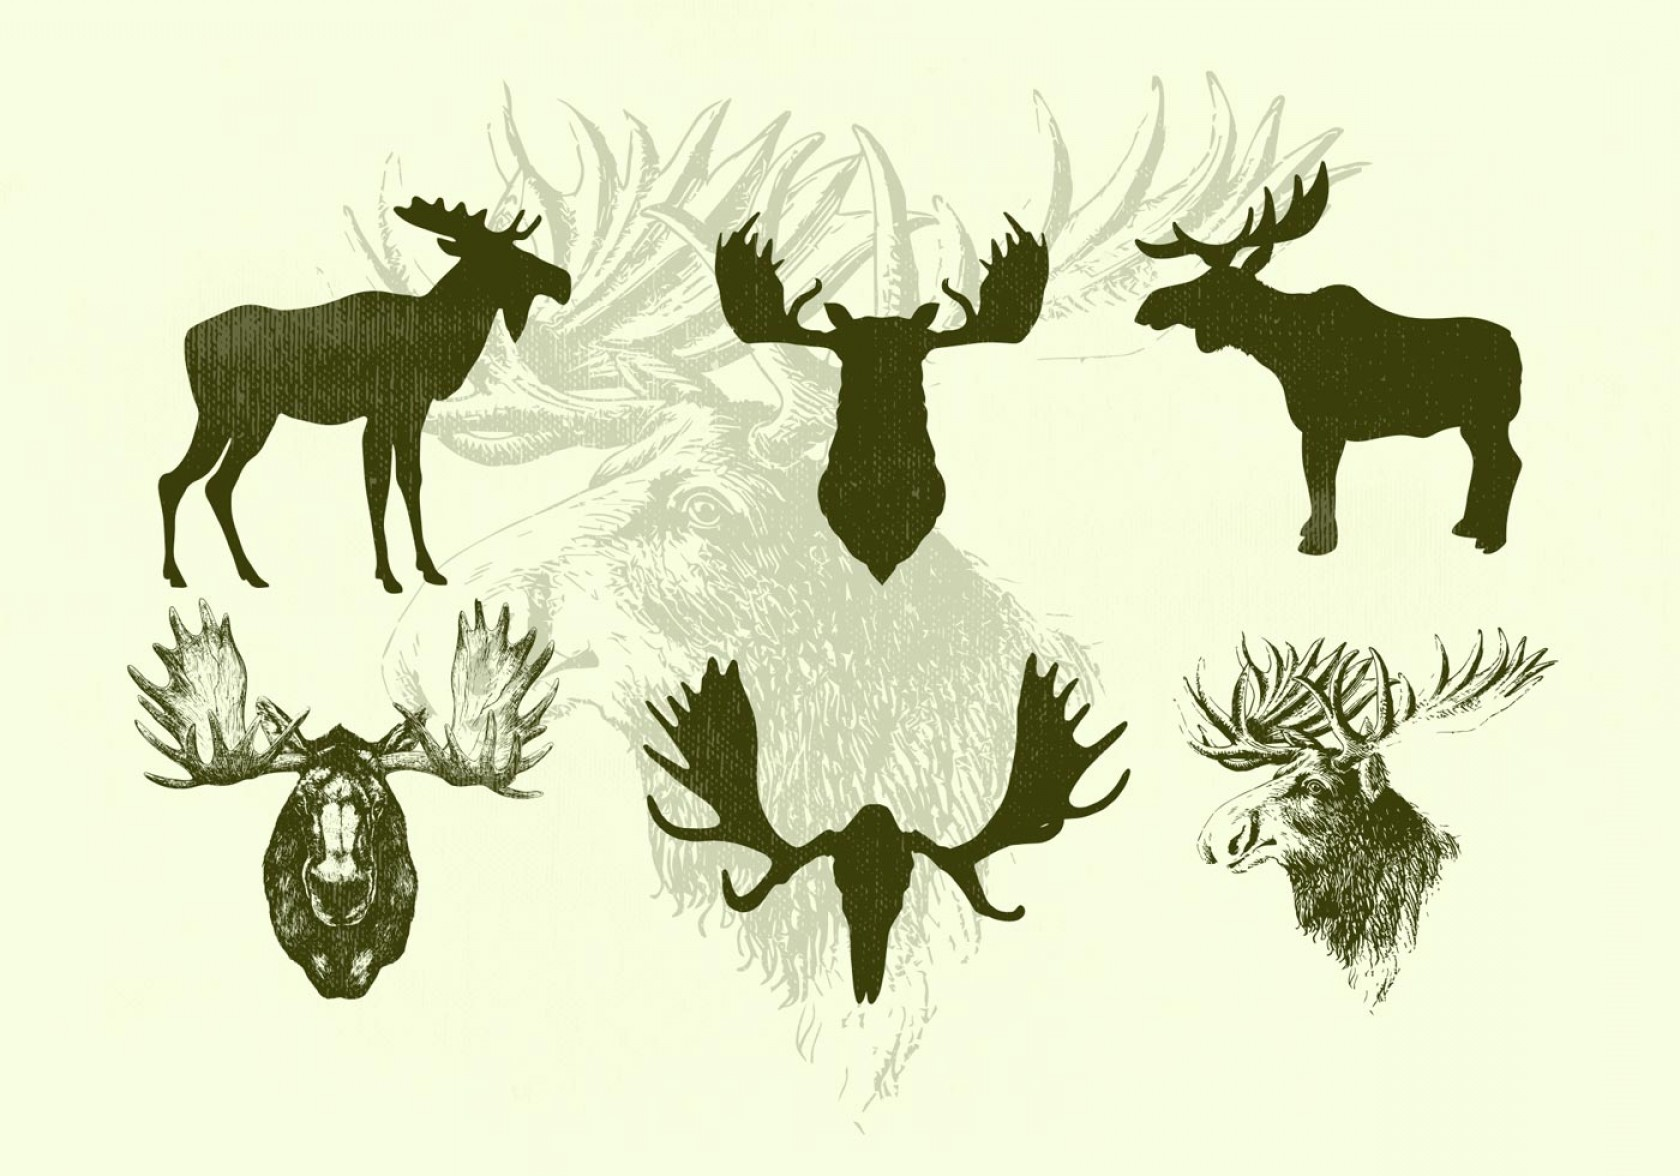 Moose Skull Vector: Standing Moose And Moose Heads Vector Silhouettes